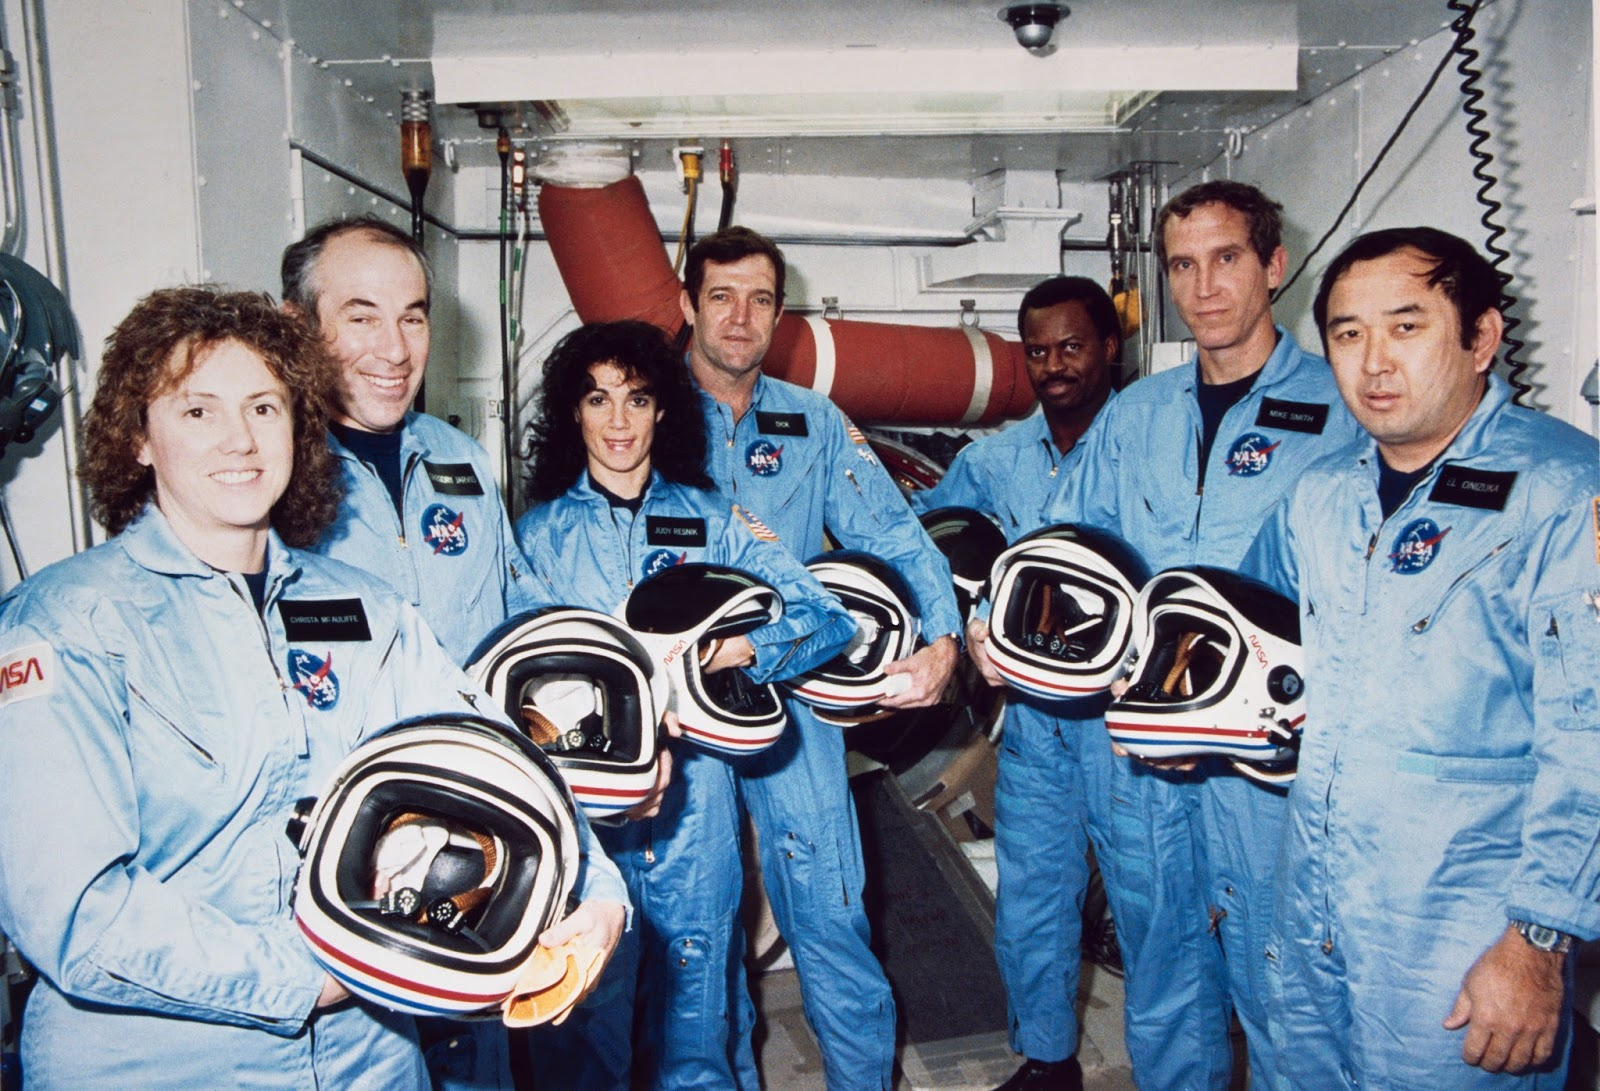 space shuttle challenger findings - photo #15